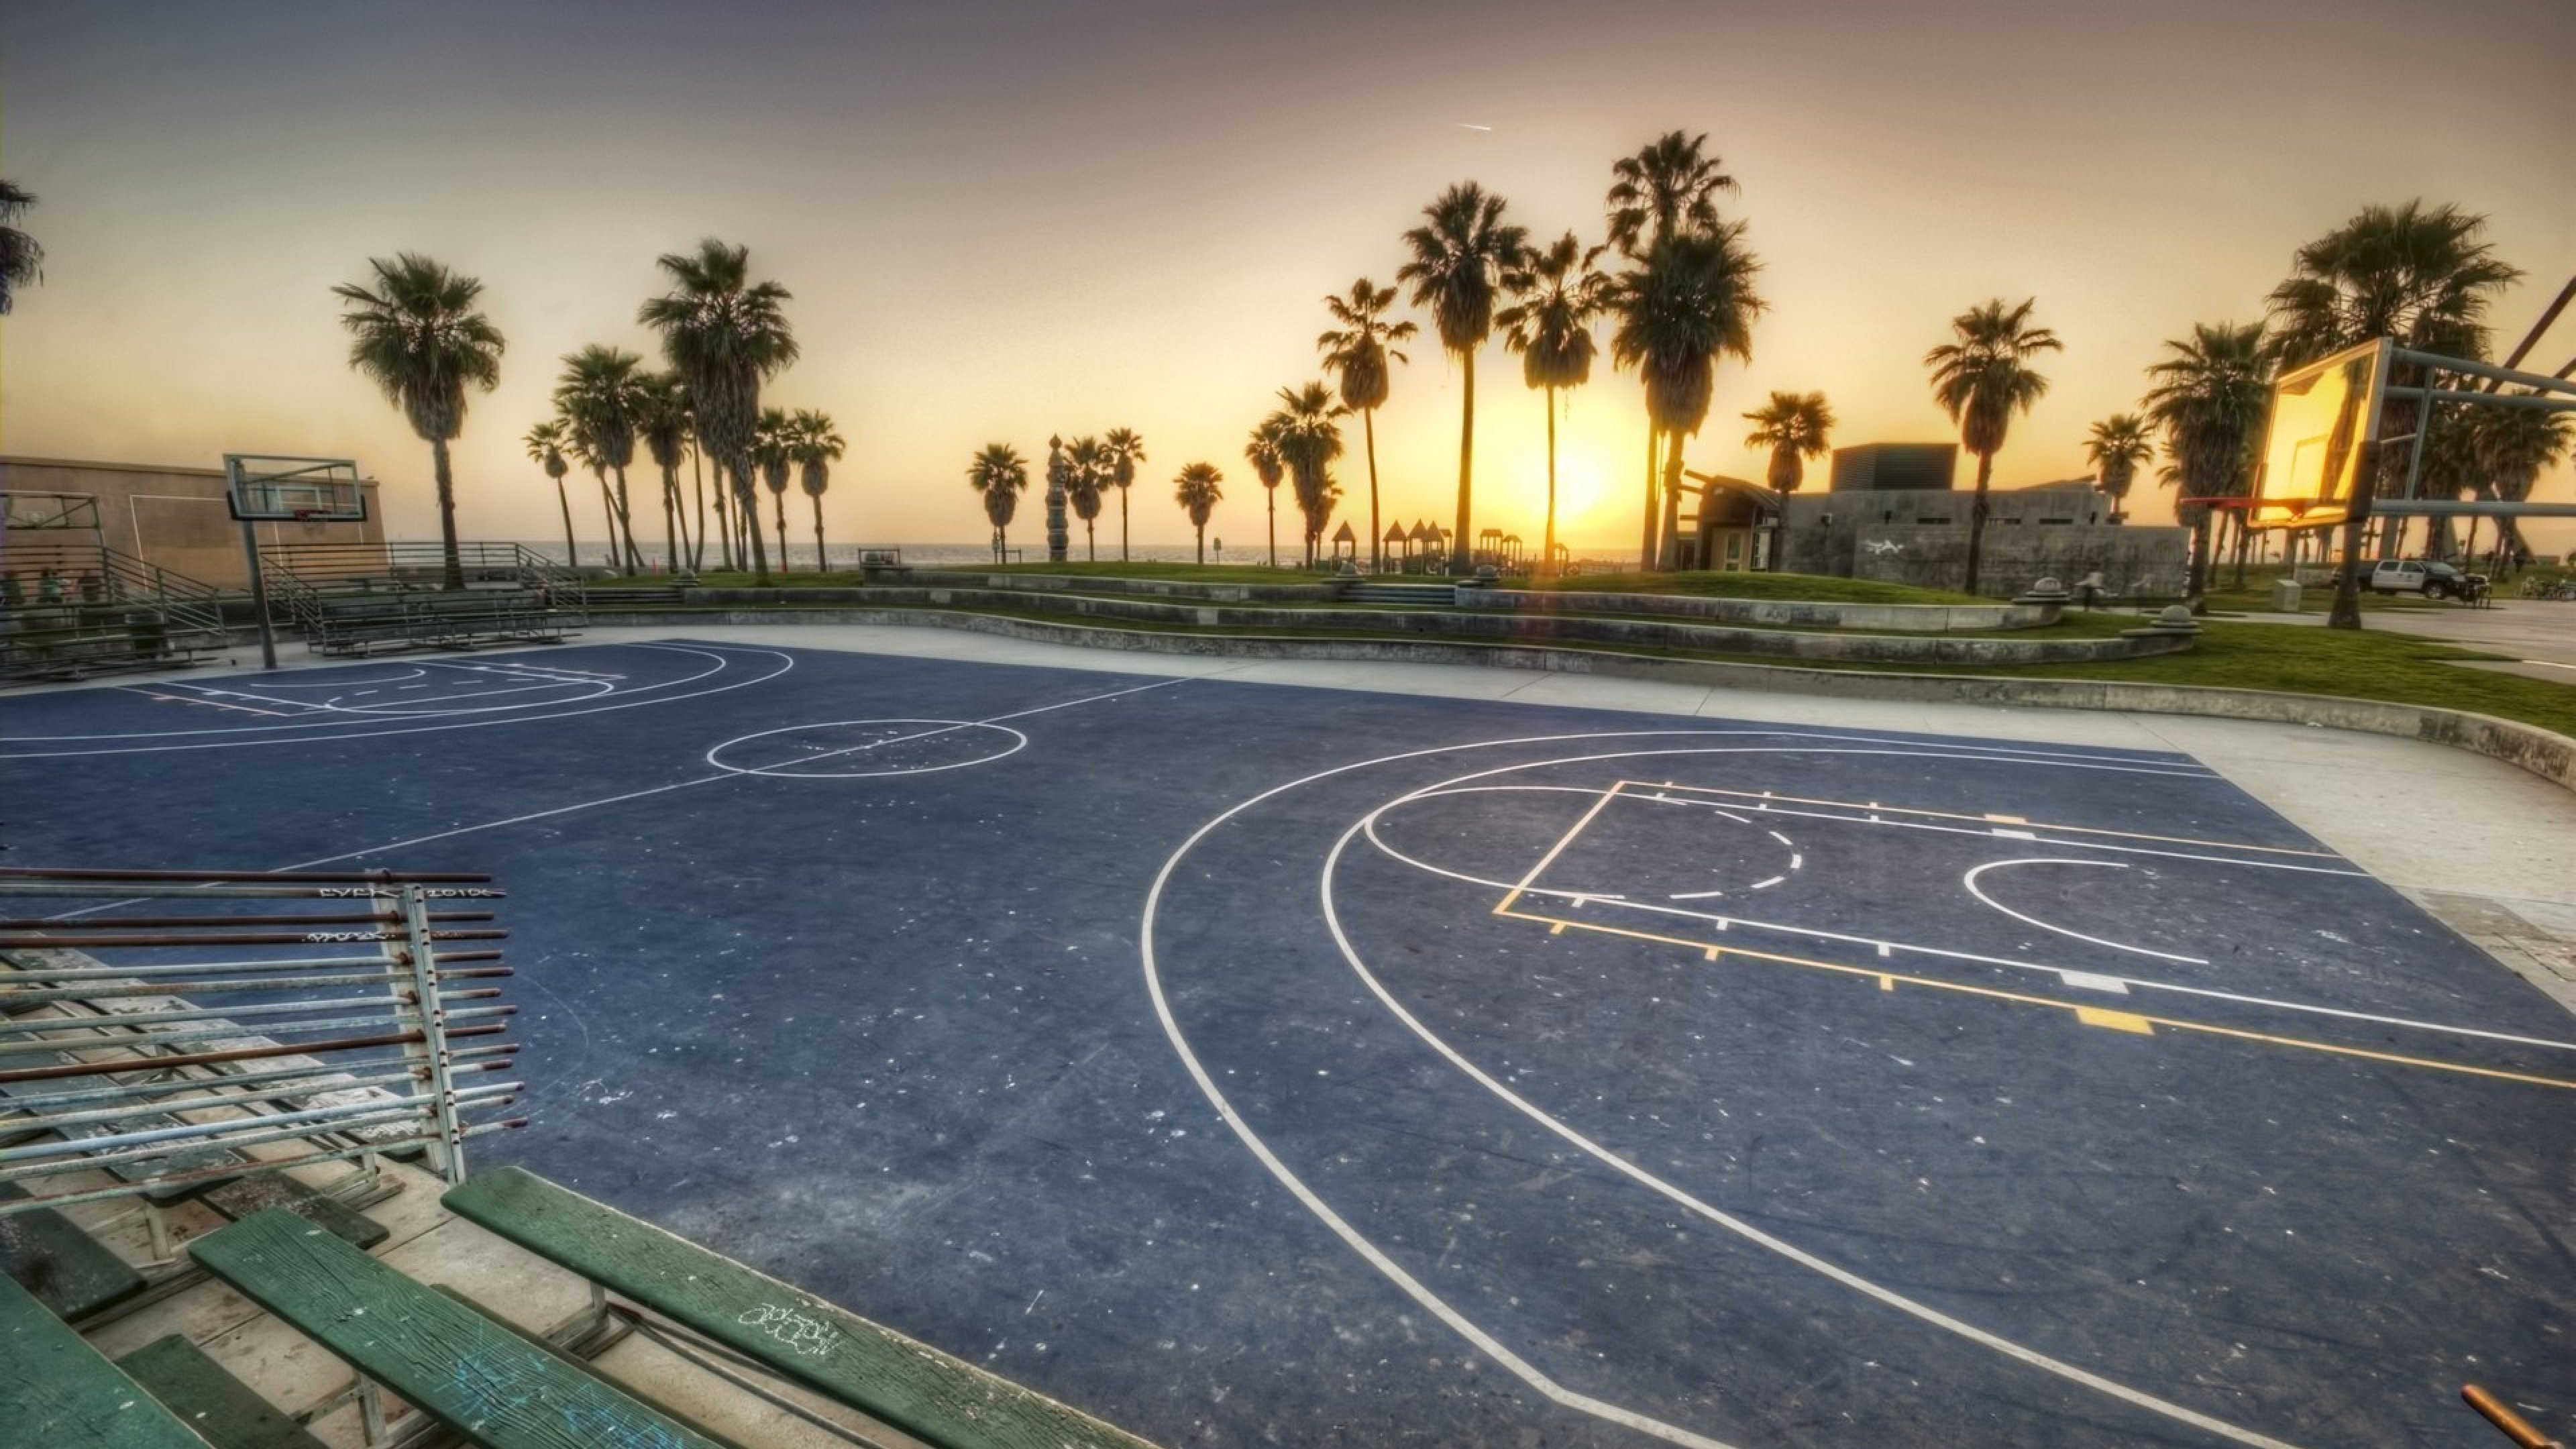 3840x2160 Wallpaper los angeles california evening playground 3840x2160